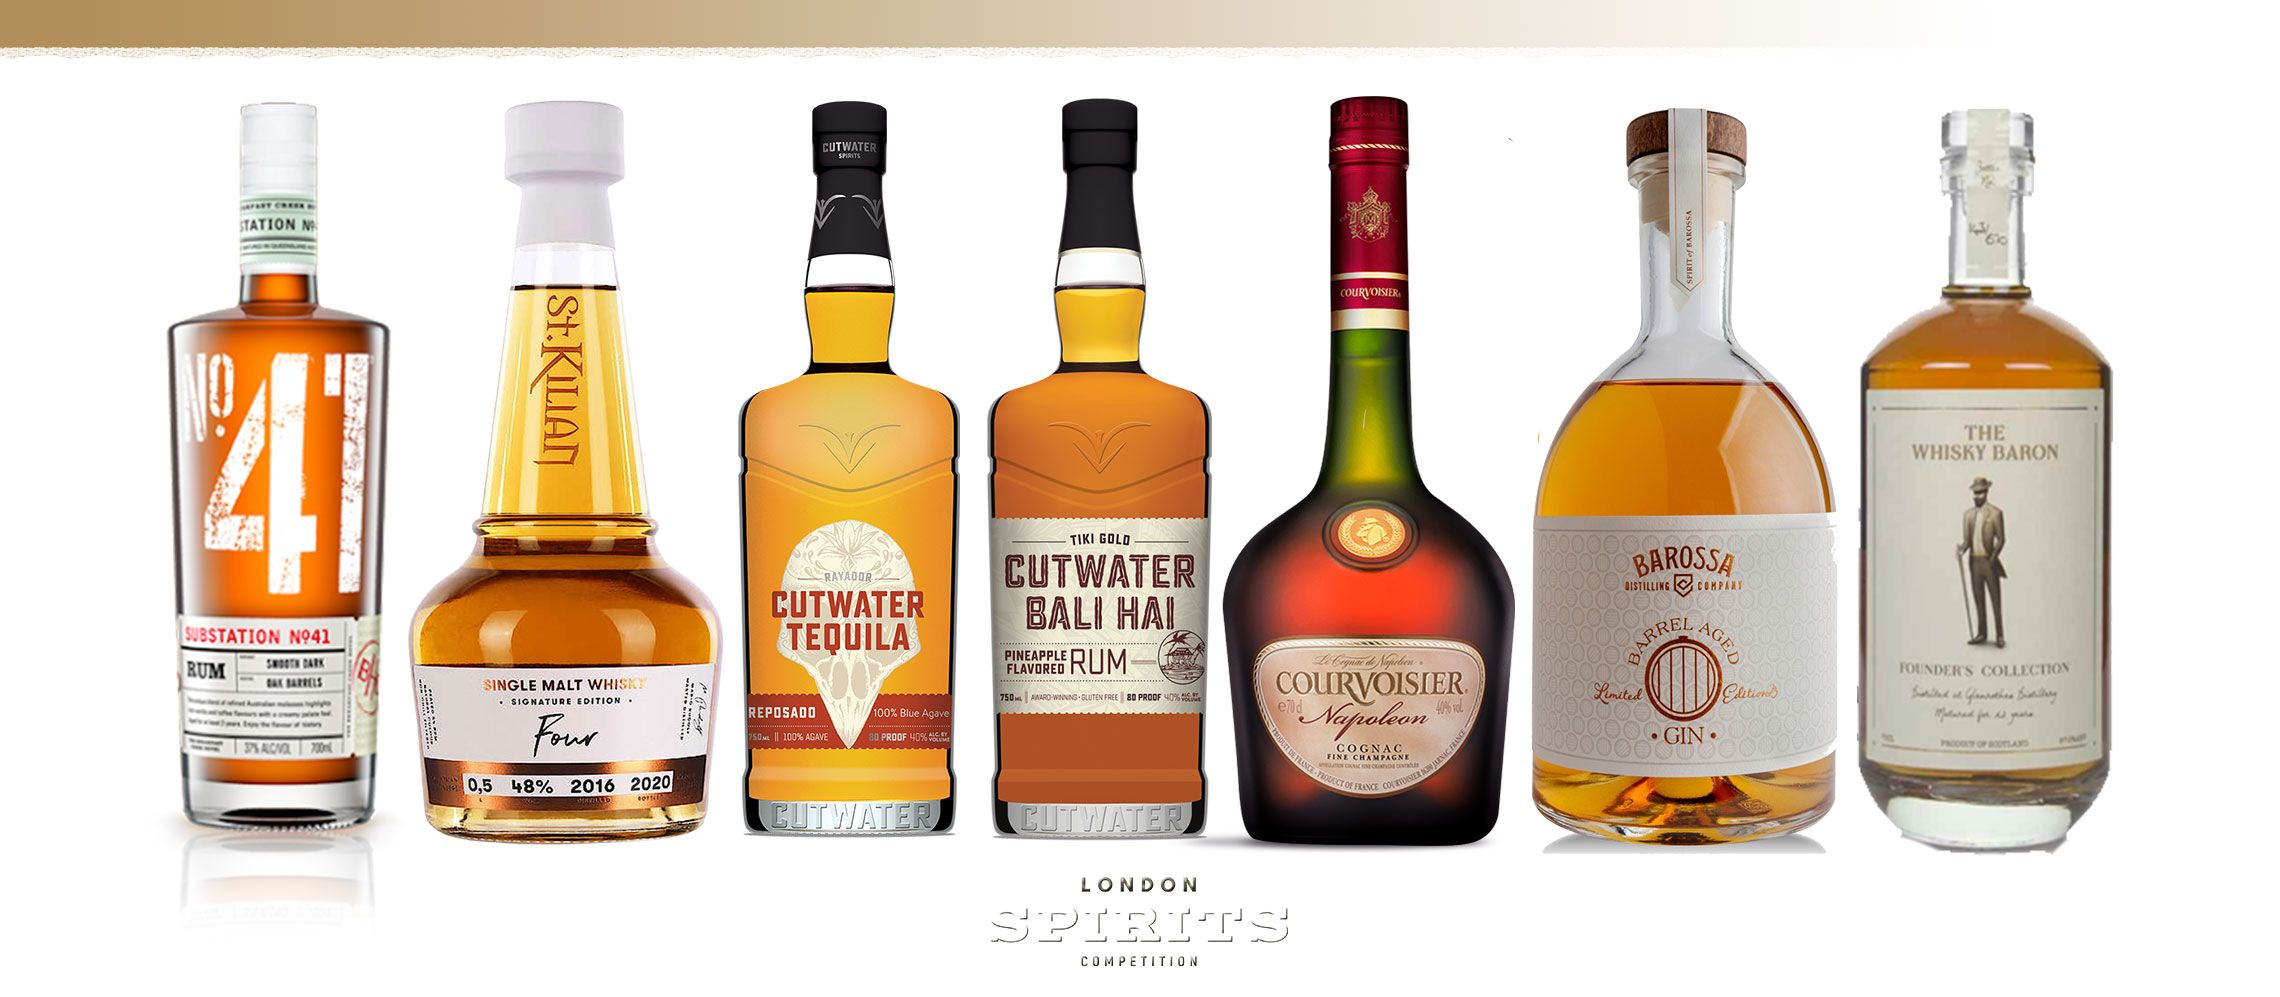 Photo for: 10 Gold Winners At The 2020 London Spirits Competition